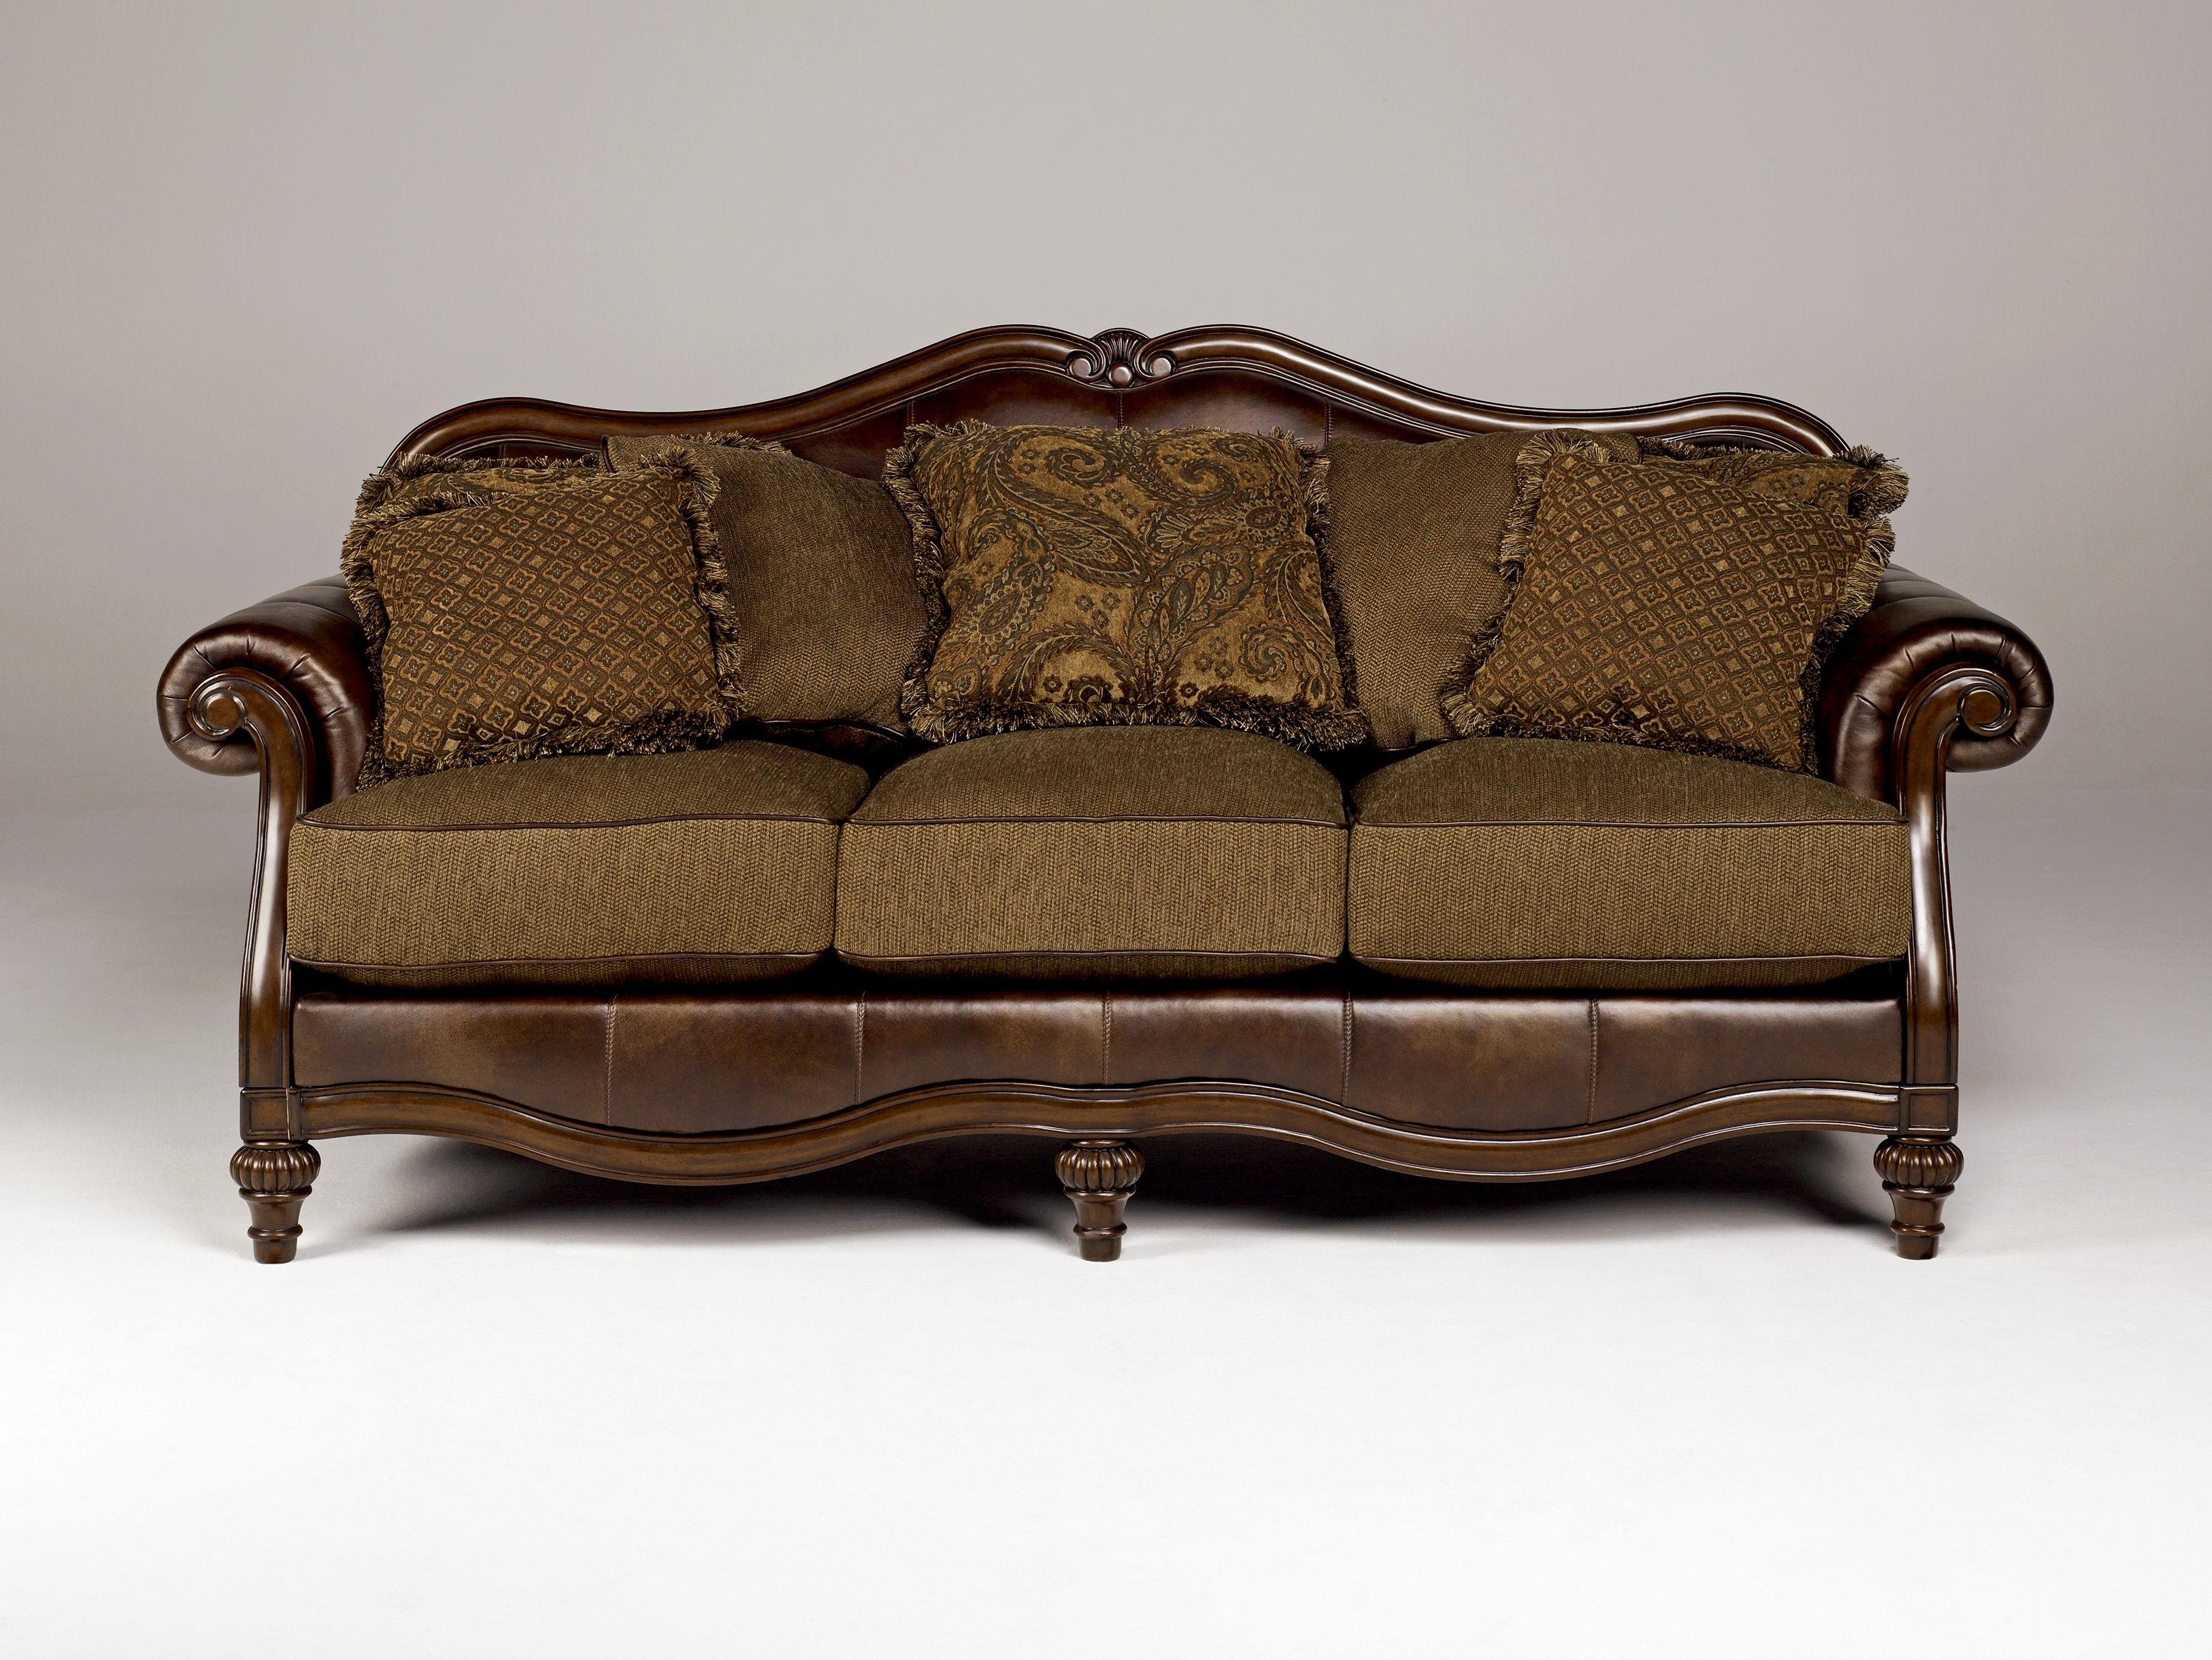 Claremore Traditional Antique Fabric Sofa W/pillow Back | Living With Regard To Antique Sofa Chairs (Image 8 of 20)